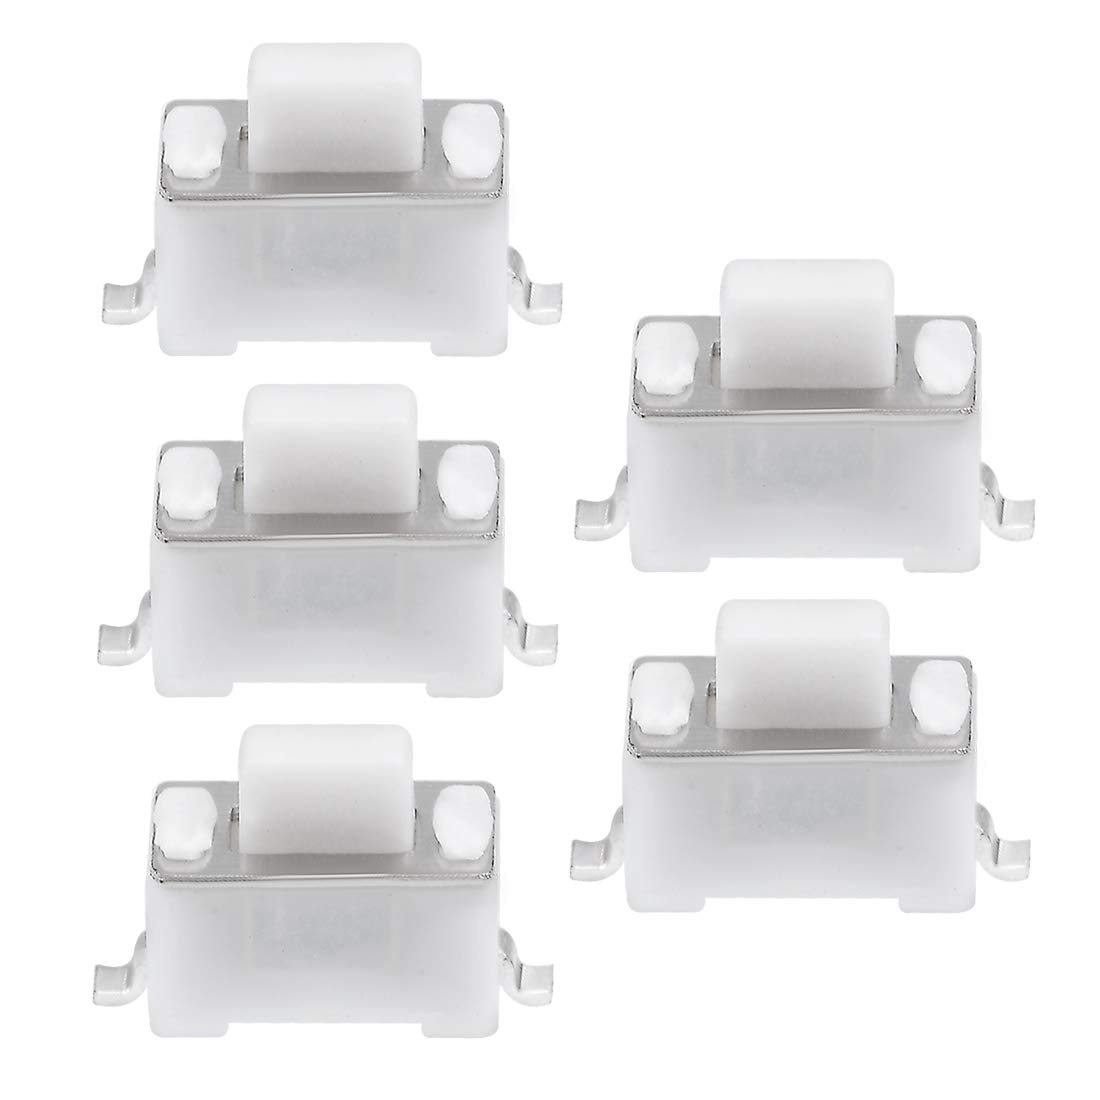 uxcell 3x6x5mm Momentary PCB SMT SMD Rectangle Push Button SPST Tactile Tact Switch White 20PCS